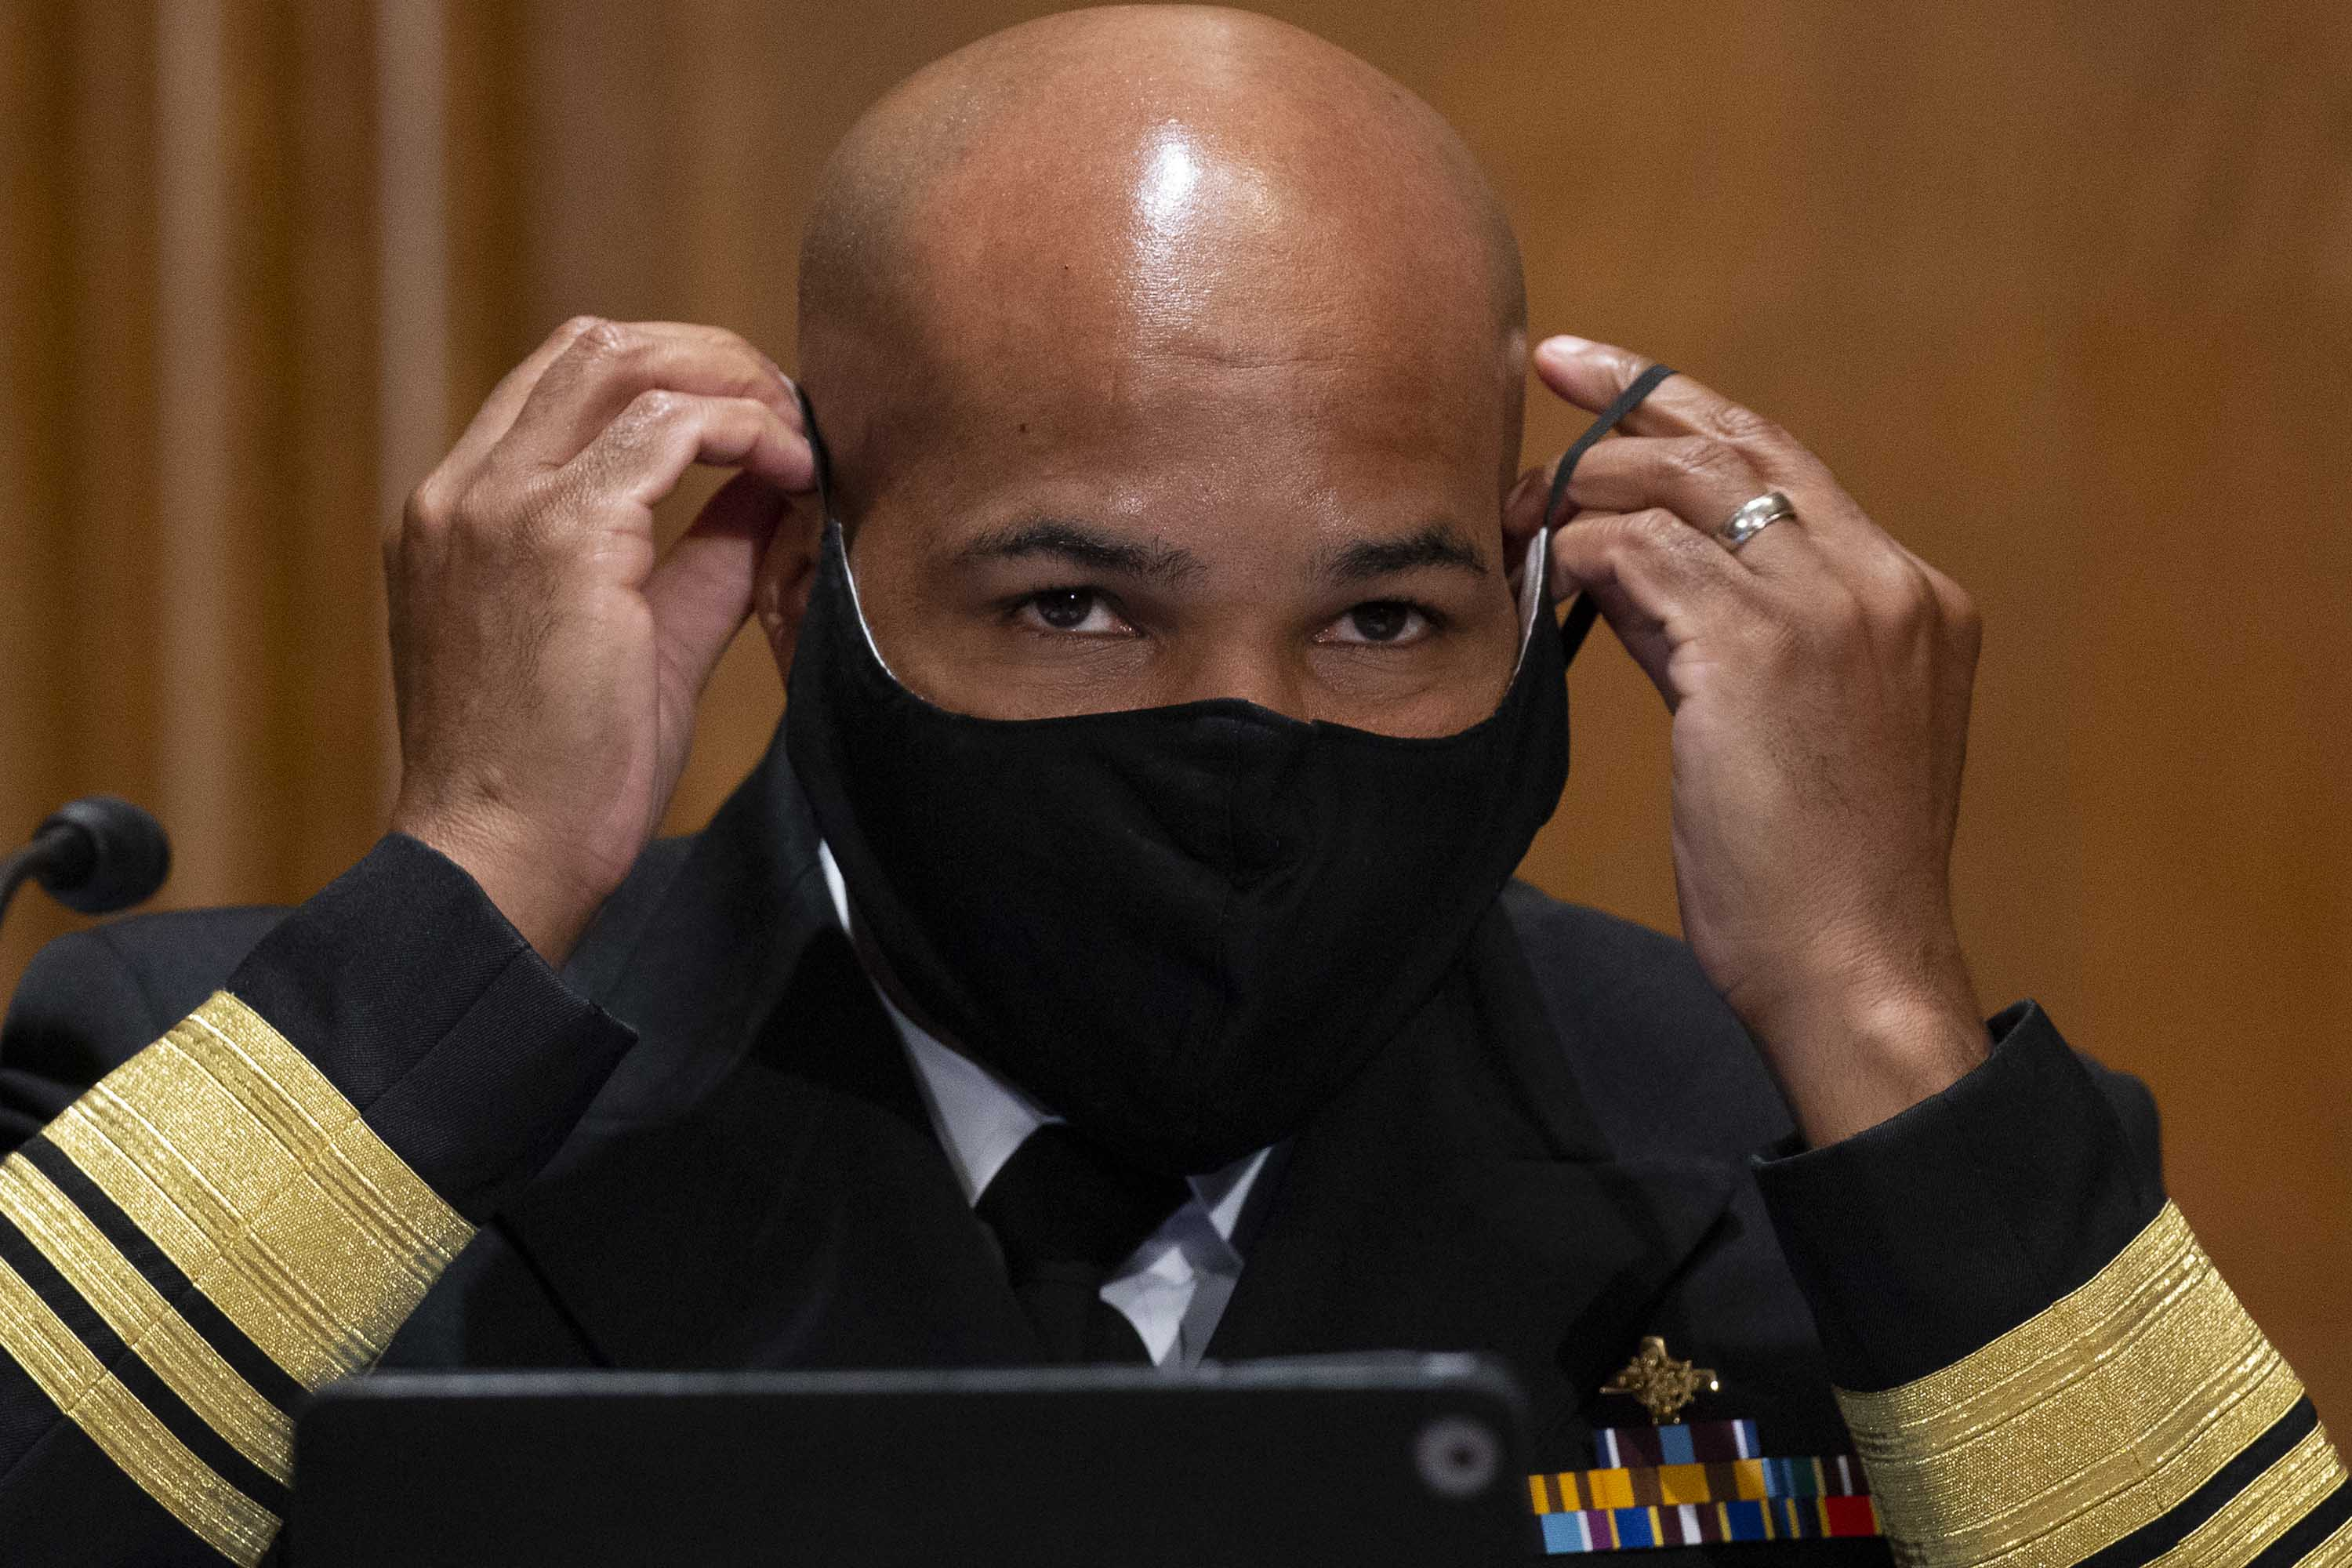 US Surgeon General Dr. Jerome Adams puts on a face mask during a Senate Health, Education, Labor, and Pensions Committee hearing on September 9, in Washington DC.